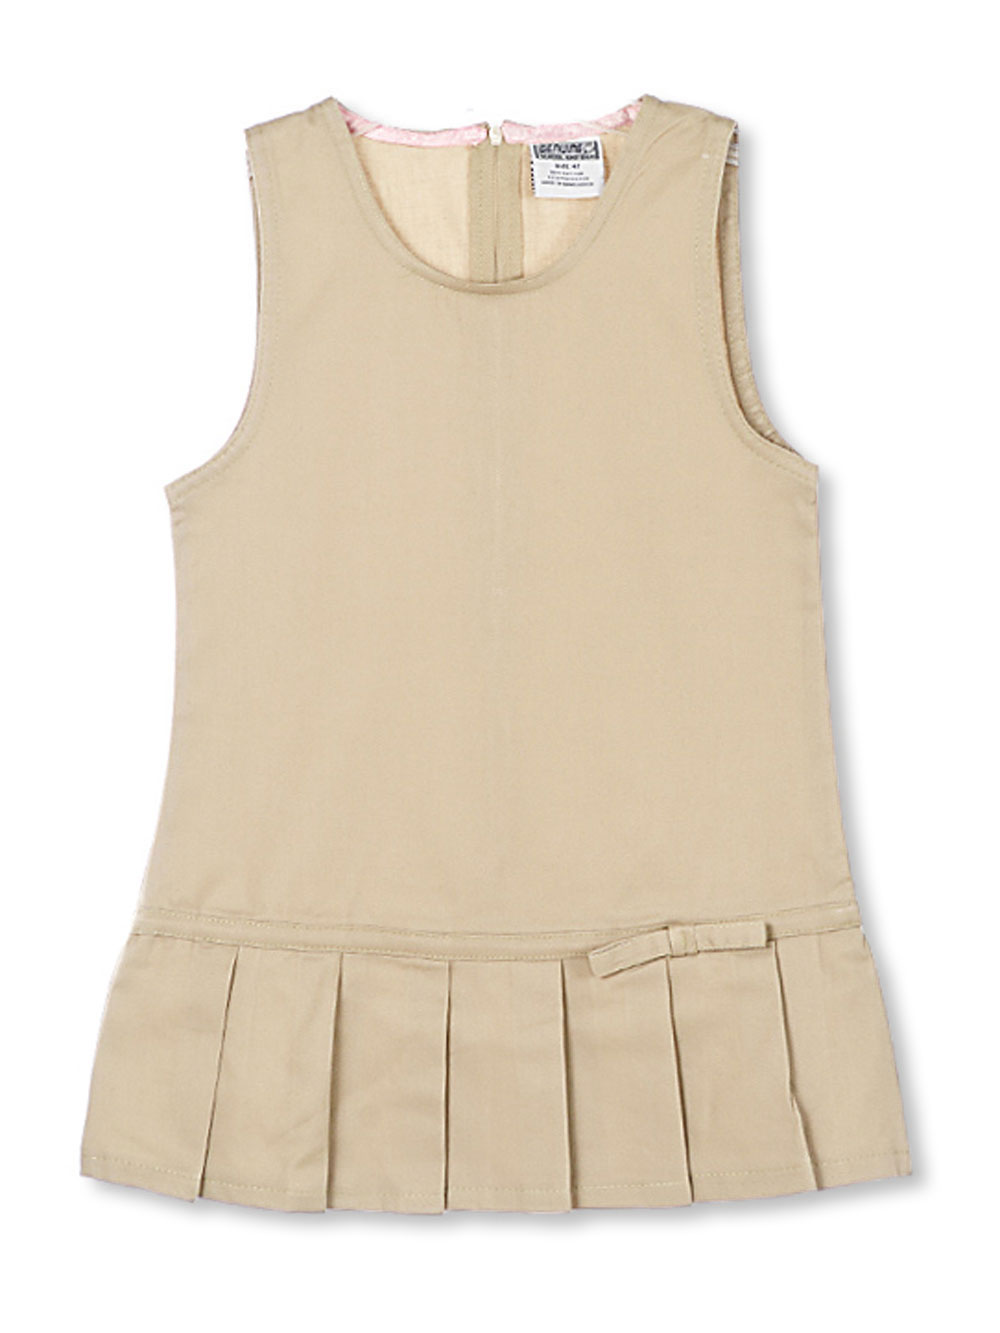 Image of Genuine Little Girls Toddler Low Pleat Twill Jumper Sizes 2T  4T  khaki 3t